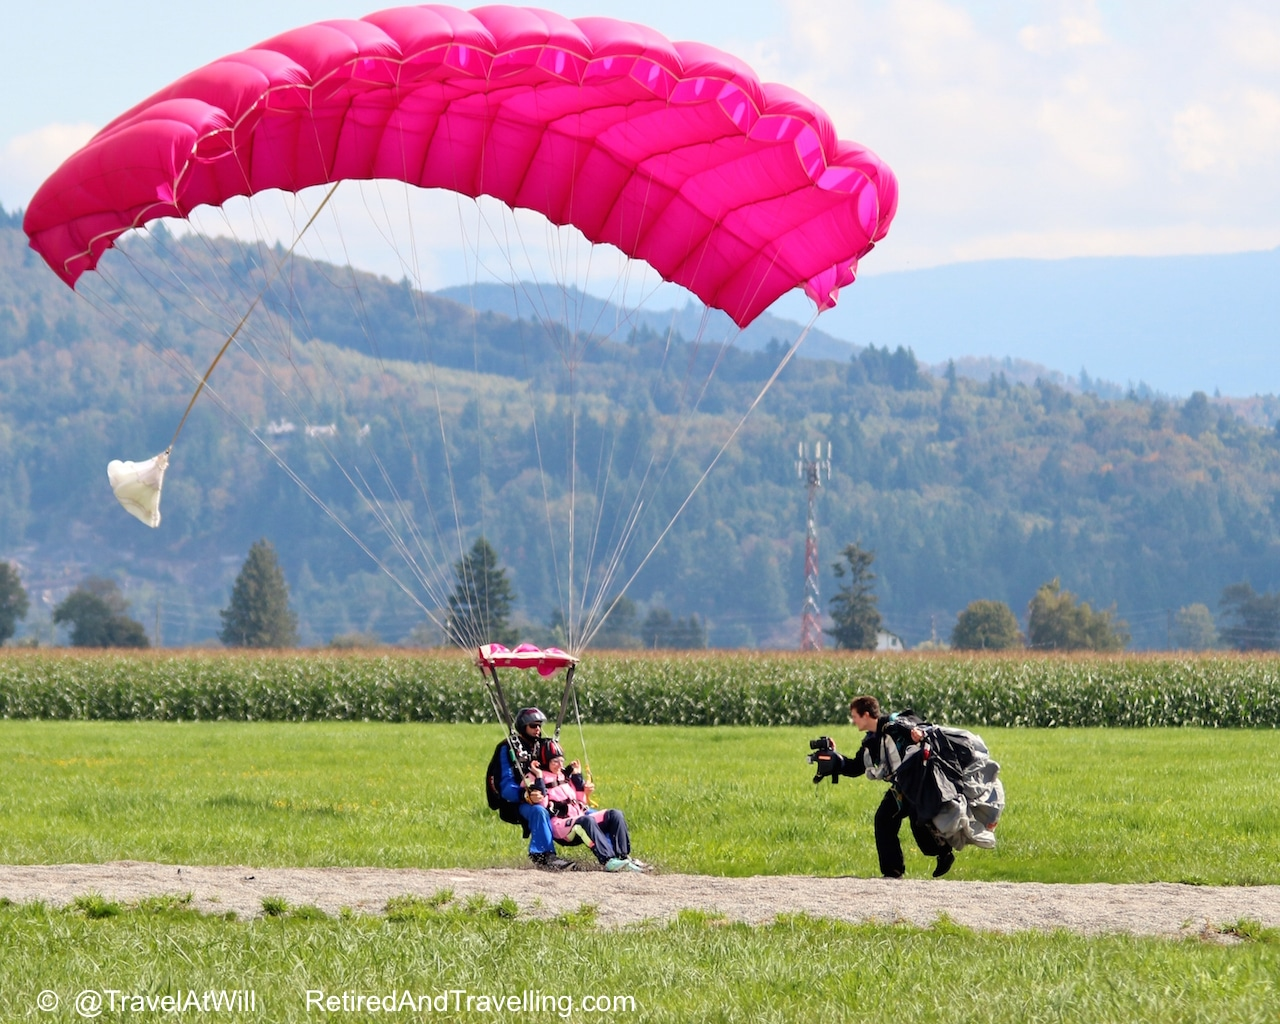 Skydivers Land - Skydiving In The Rear View Mirror.jpg